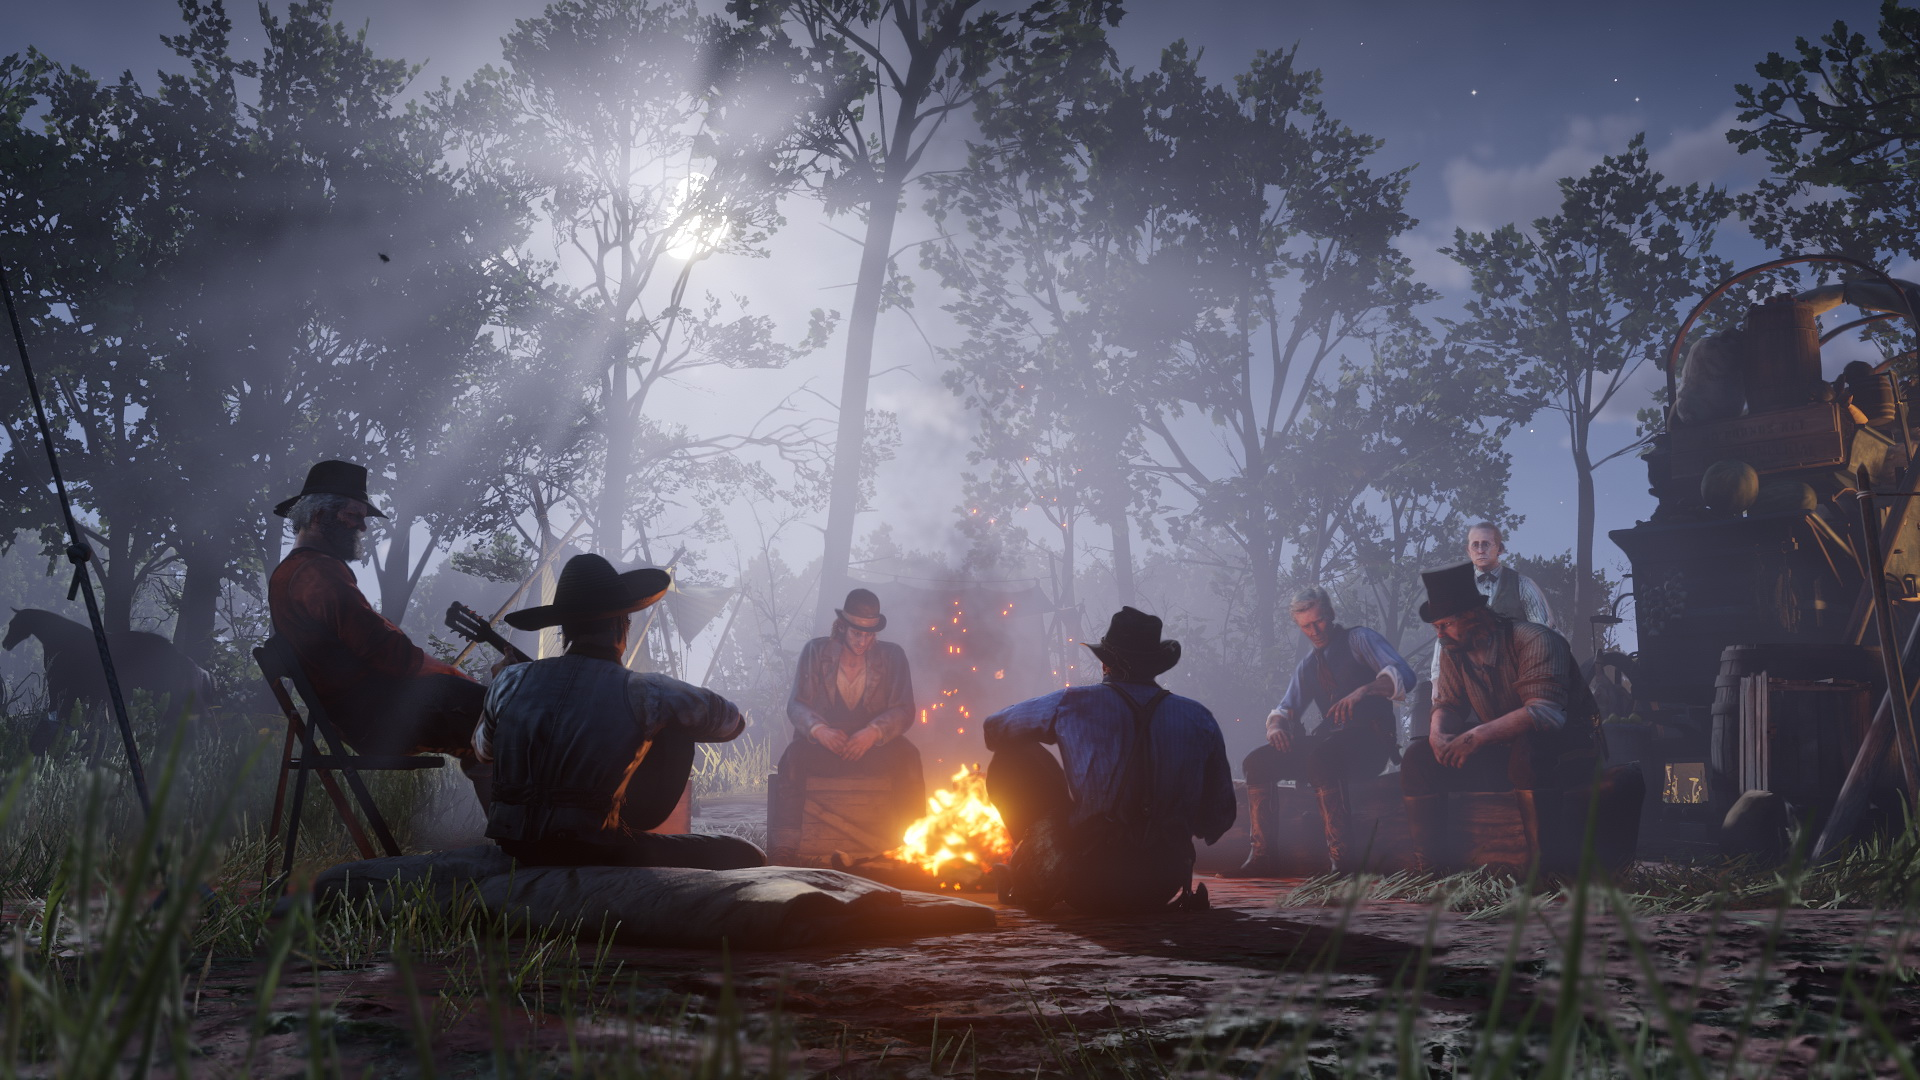 Un Glitch audio di Red Dead Redemption 2 potrebbe suggerire un DLC remake di Red Dead Redemption